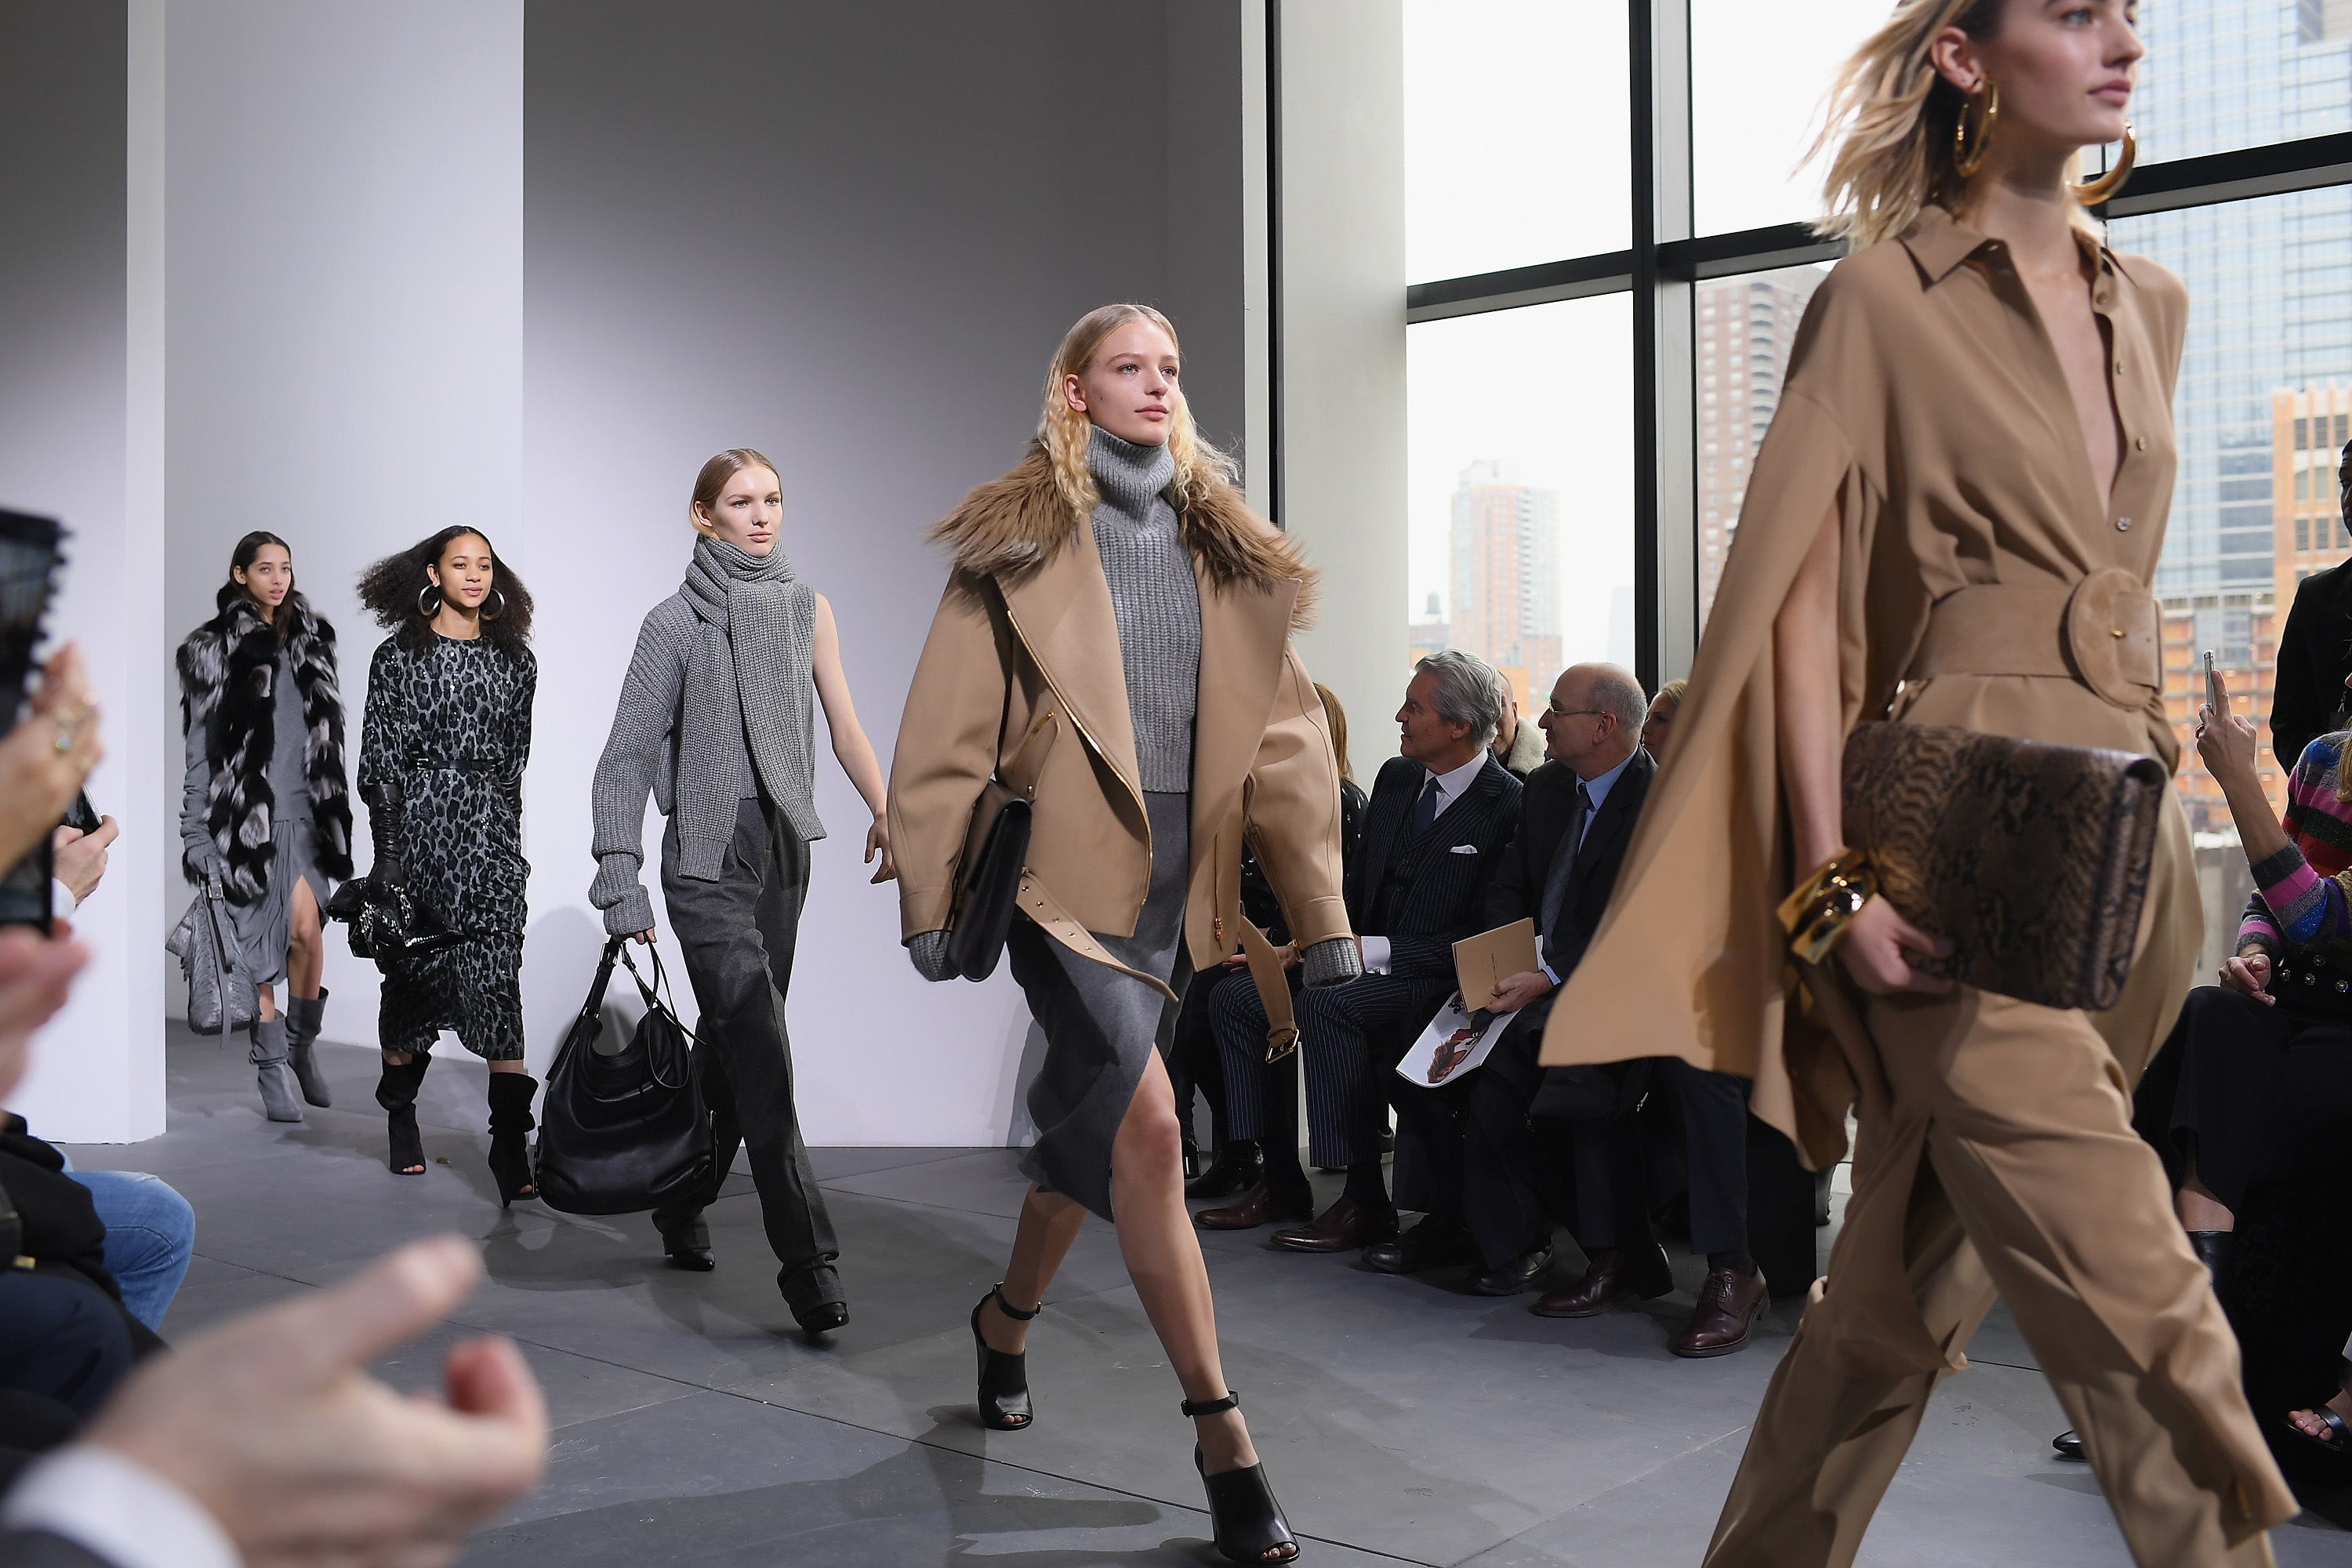 Models walk the runway during a Michael Kors Collection show.